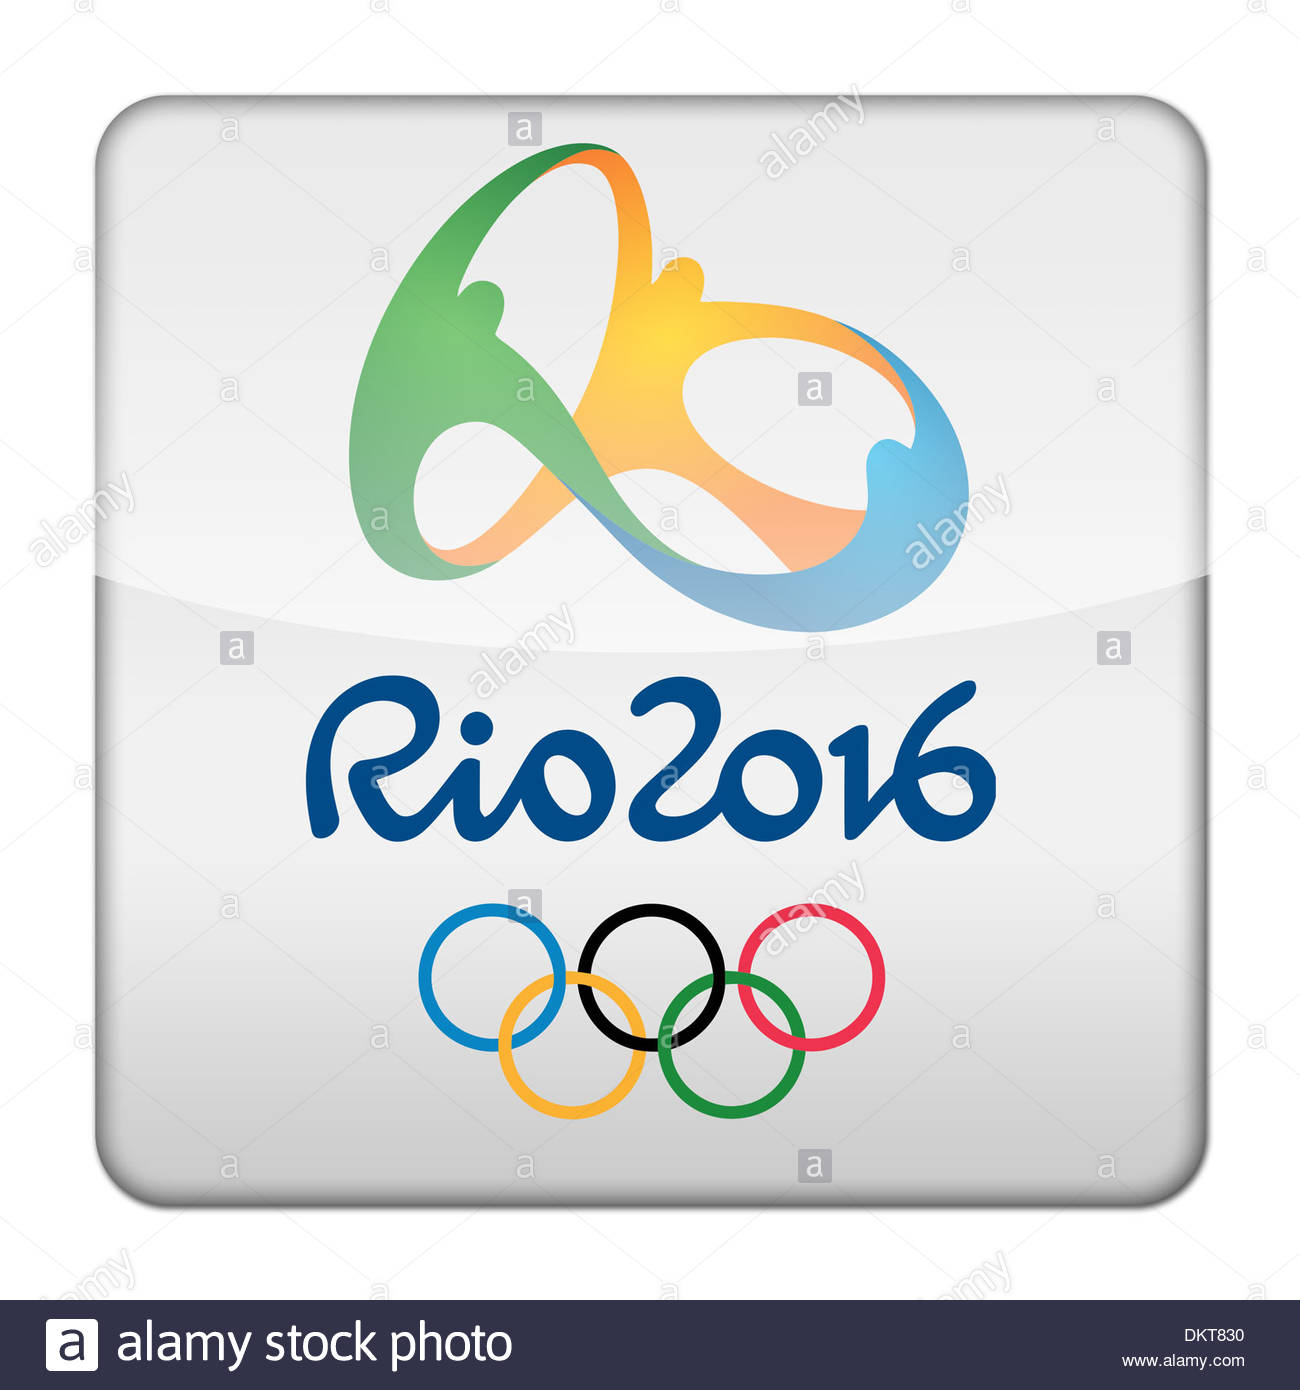 Glossy logo icon app of the Summer Olympic games 2016 in Rio Brazil - Stock Image